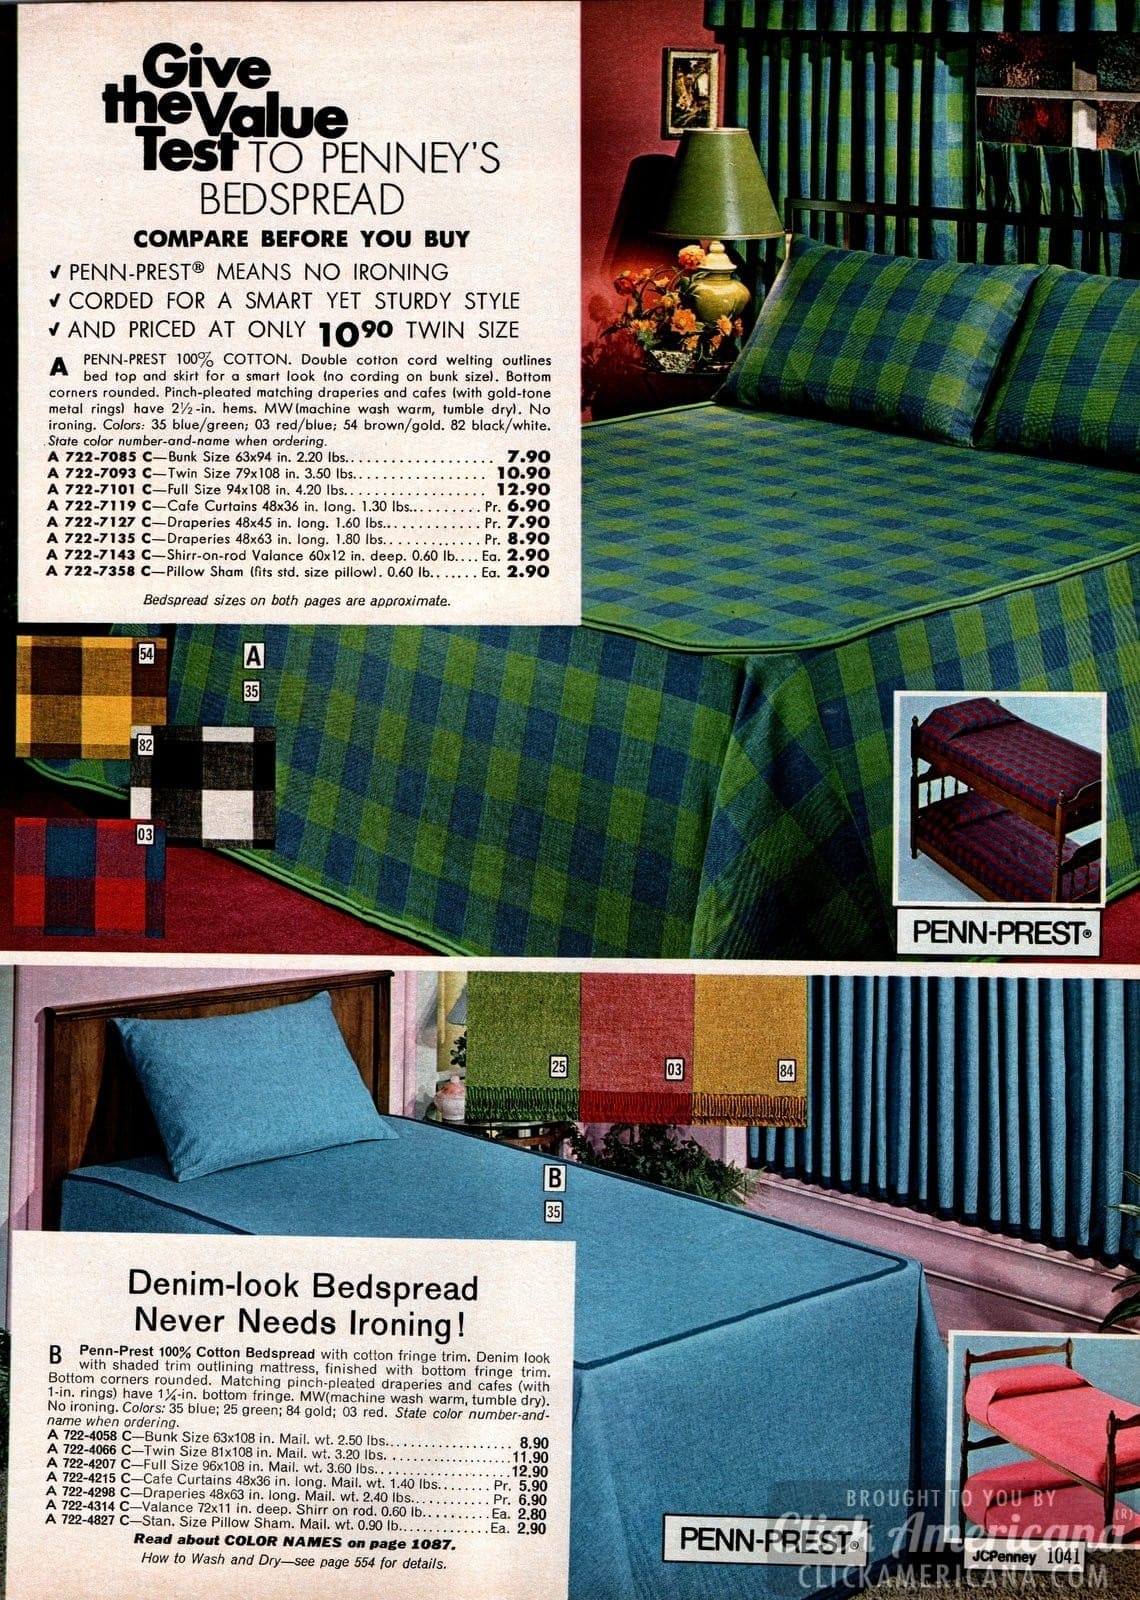 Popular bedspreads - Gingham-style and denim-look decor